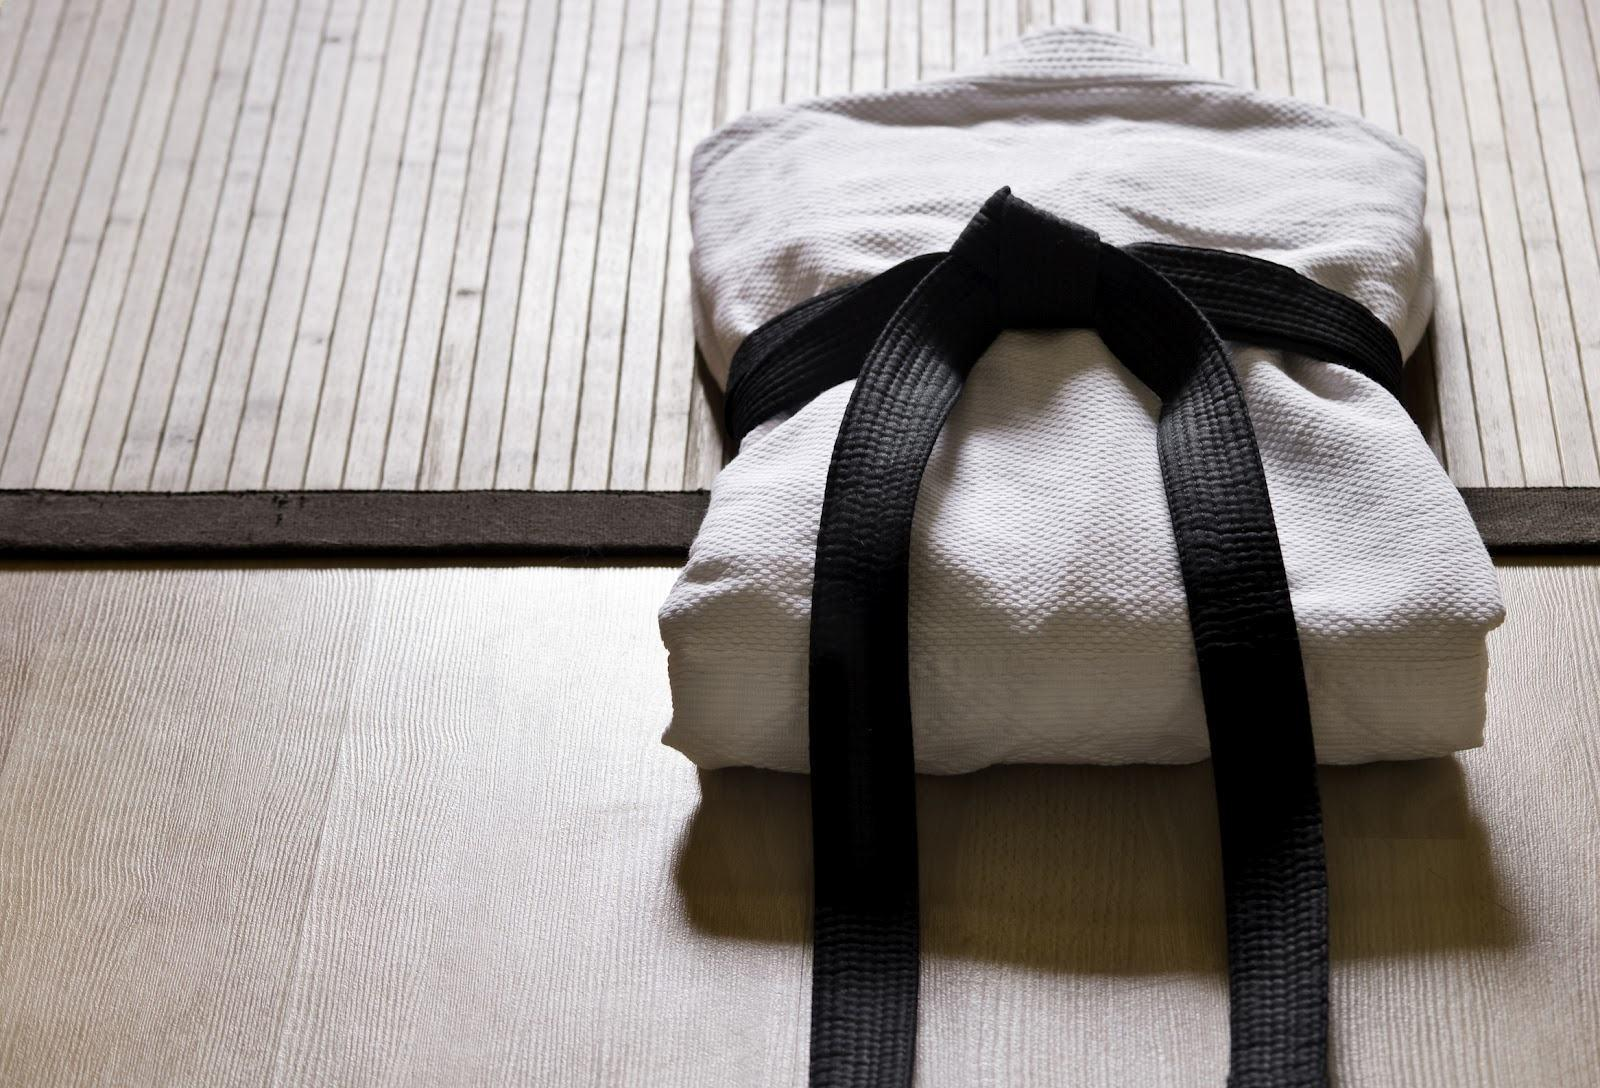 Karate Pack 2 Live Wallpaper For Android Apk Download